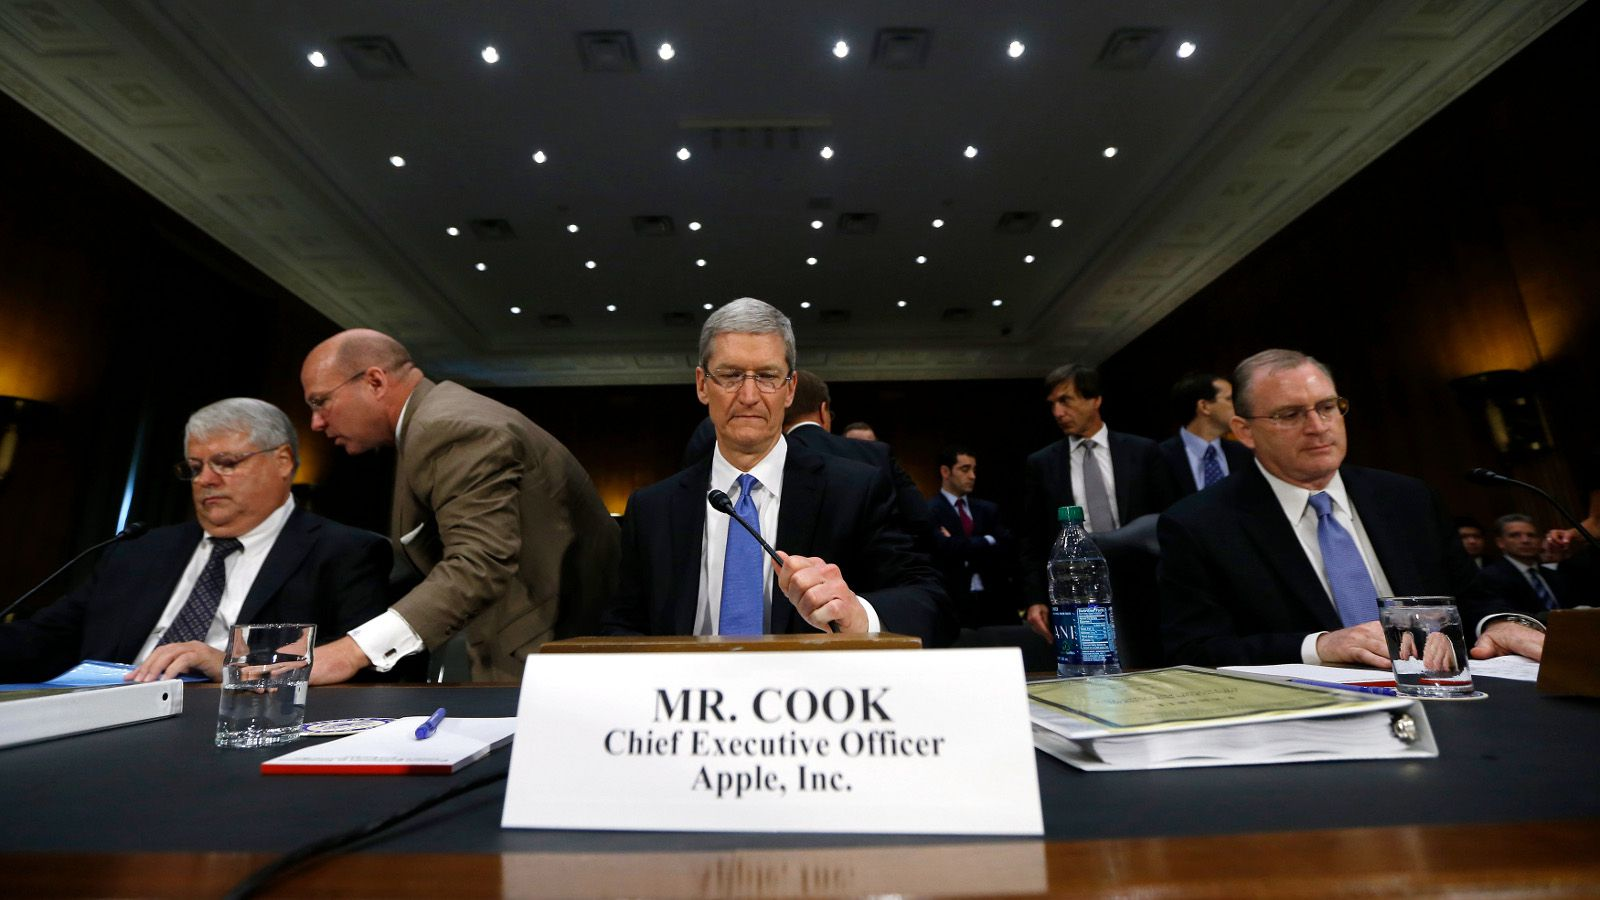 Apple CEO Tim Cook (C), CFO Peter Oppenheimer (L) and Apple Head of tax operations Philip Bullock appear before a Senate homeland security and governmental affairs investigations subcommittee hearing on offshore profit shifting and the U.S. tax code, on Capitol Hill in Washington, May 21, 2013. Apple Inc came under fire on Tuesday at a Senate hearing over an investigation that alleged the U.S. high technology icon has kept billions of dollars in profits in Irish subsidiaries and paid little or no taxes to any government.